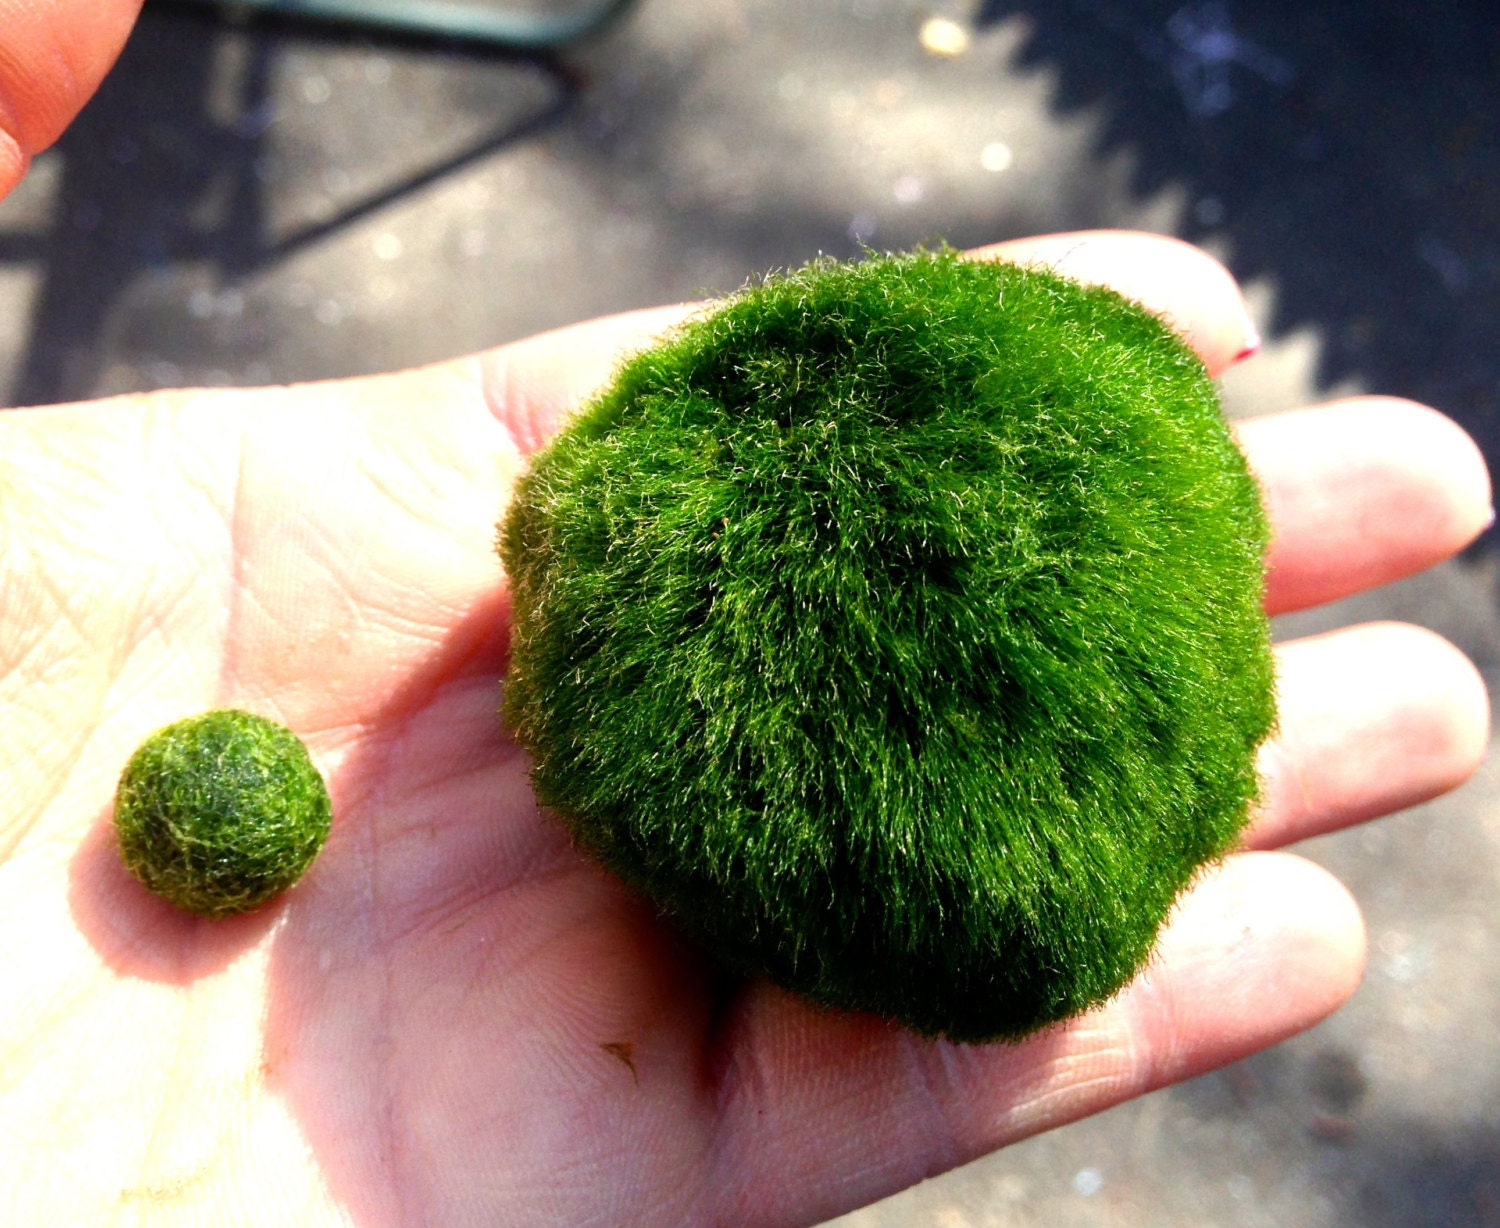 Xl giant marimo moss ball 2 1 2 inches and by for Moss balls for fish tanks